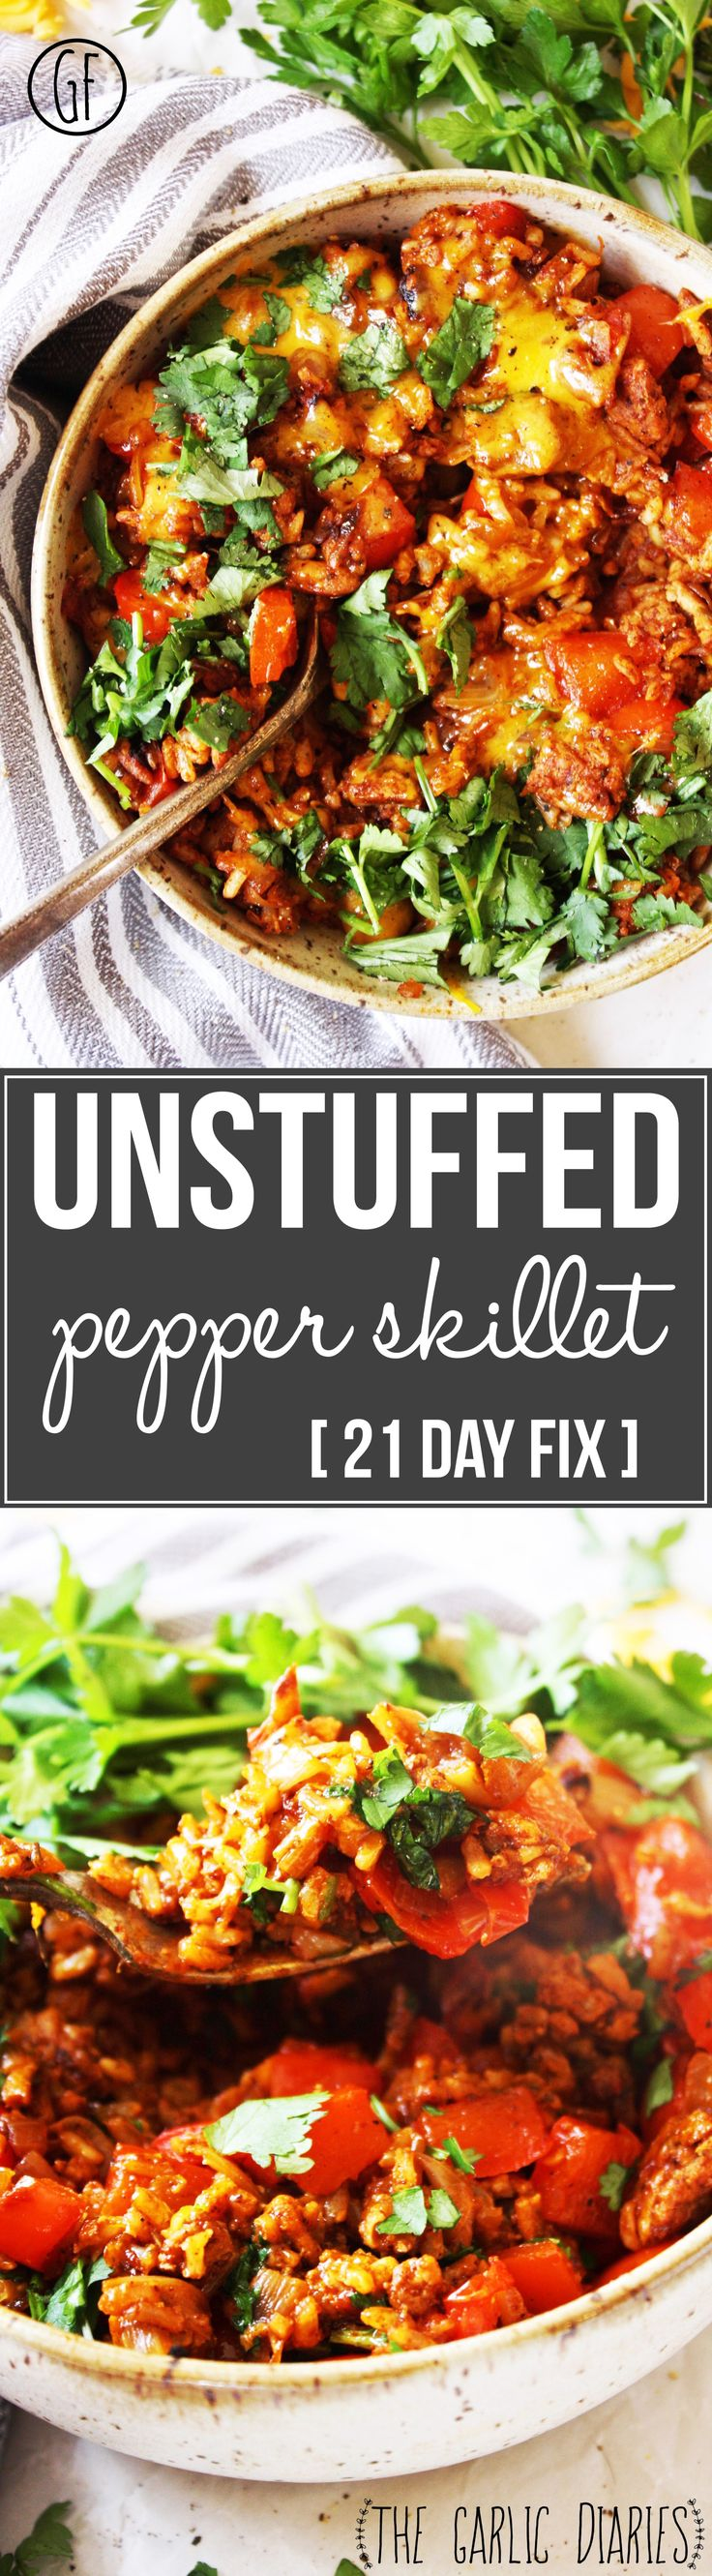 Unstuffed Pepper Skillet [21 Day Fix] - You won't believe you are eating healthy…